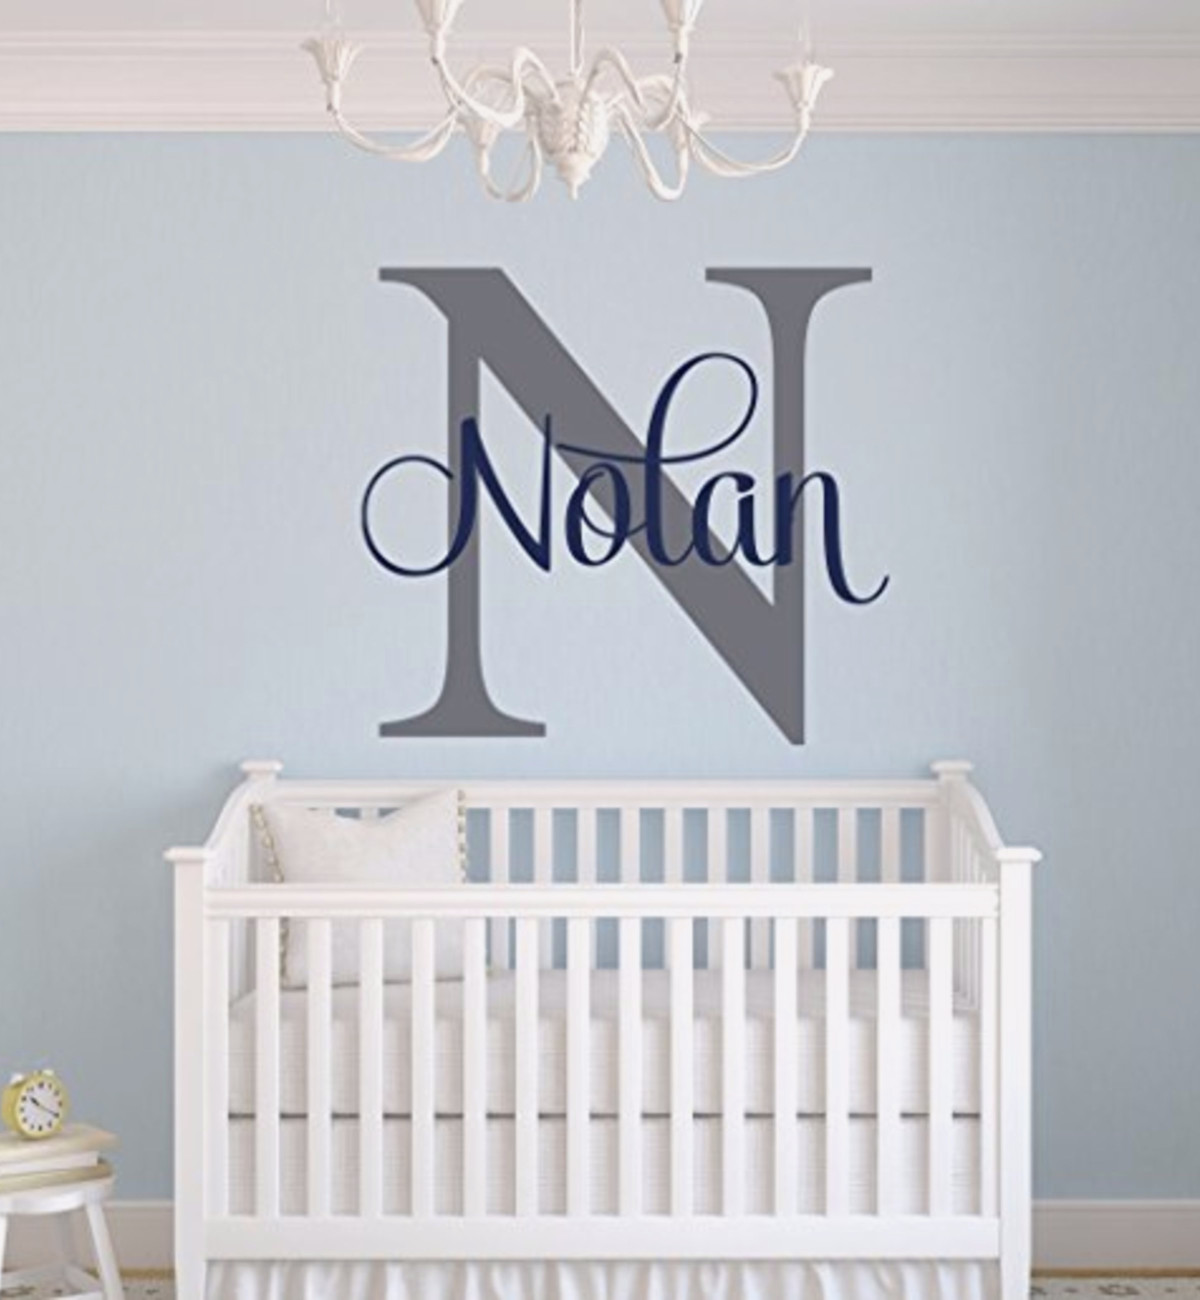 Baby boy nursery wall decor ideas best idea garden for Nursery wall art